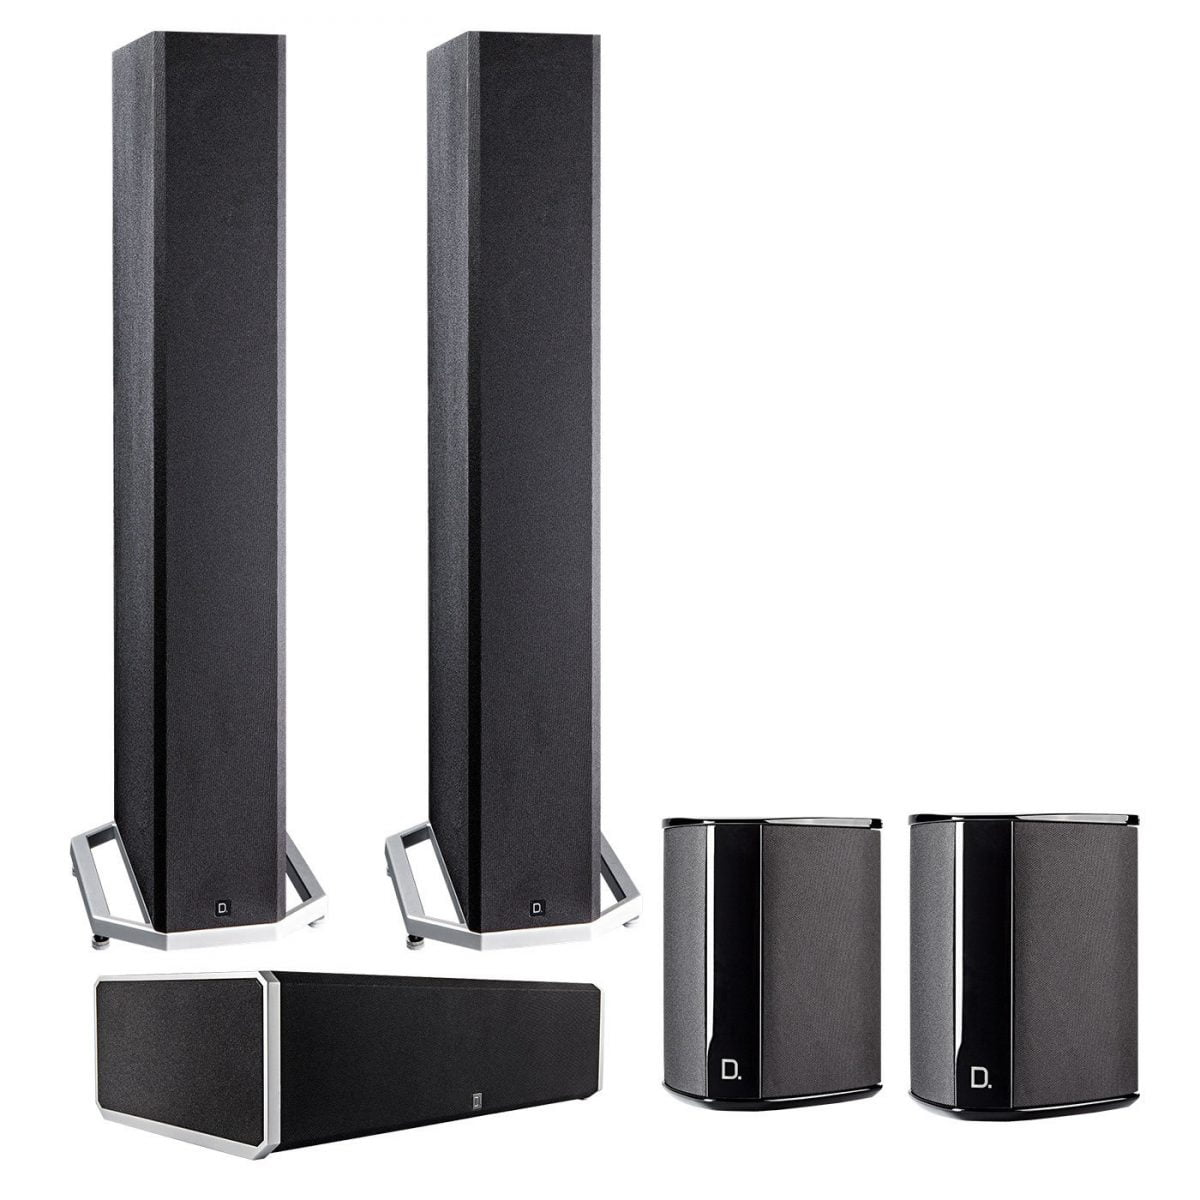 definitive technology speakers. definitive technology bp9040 speakers n